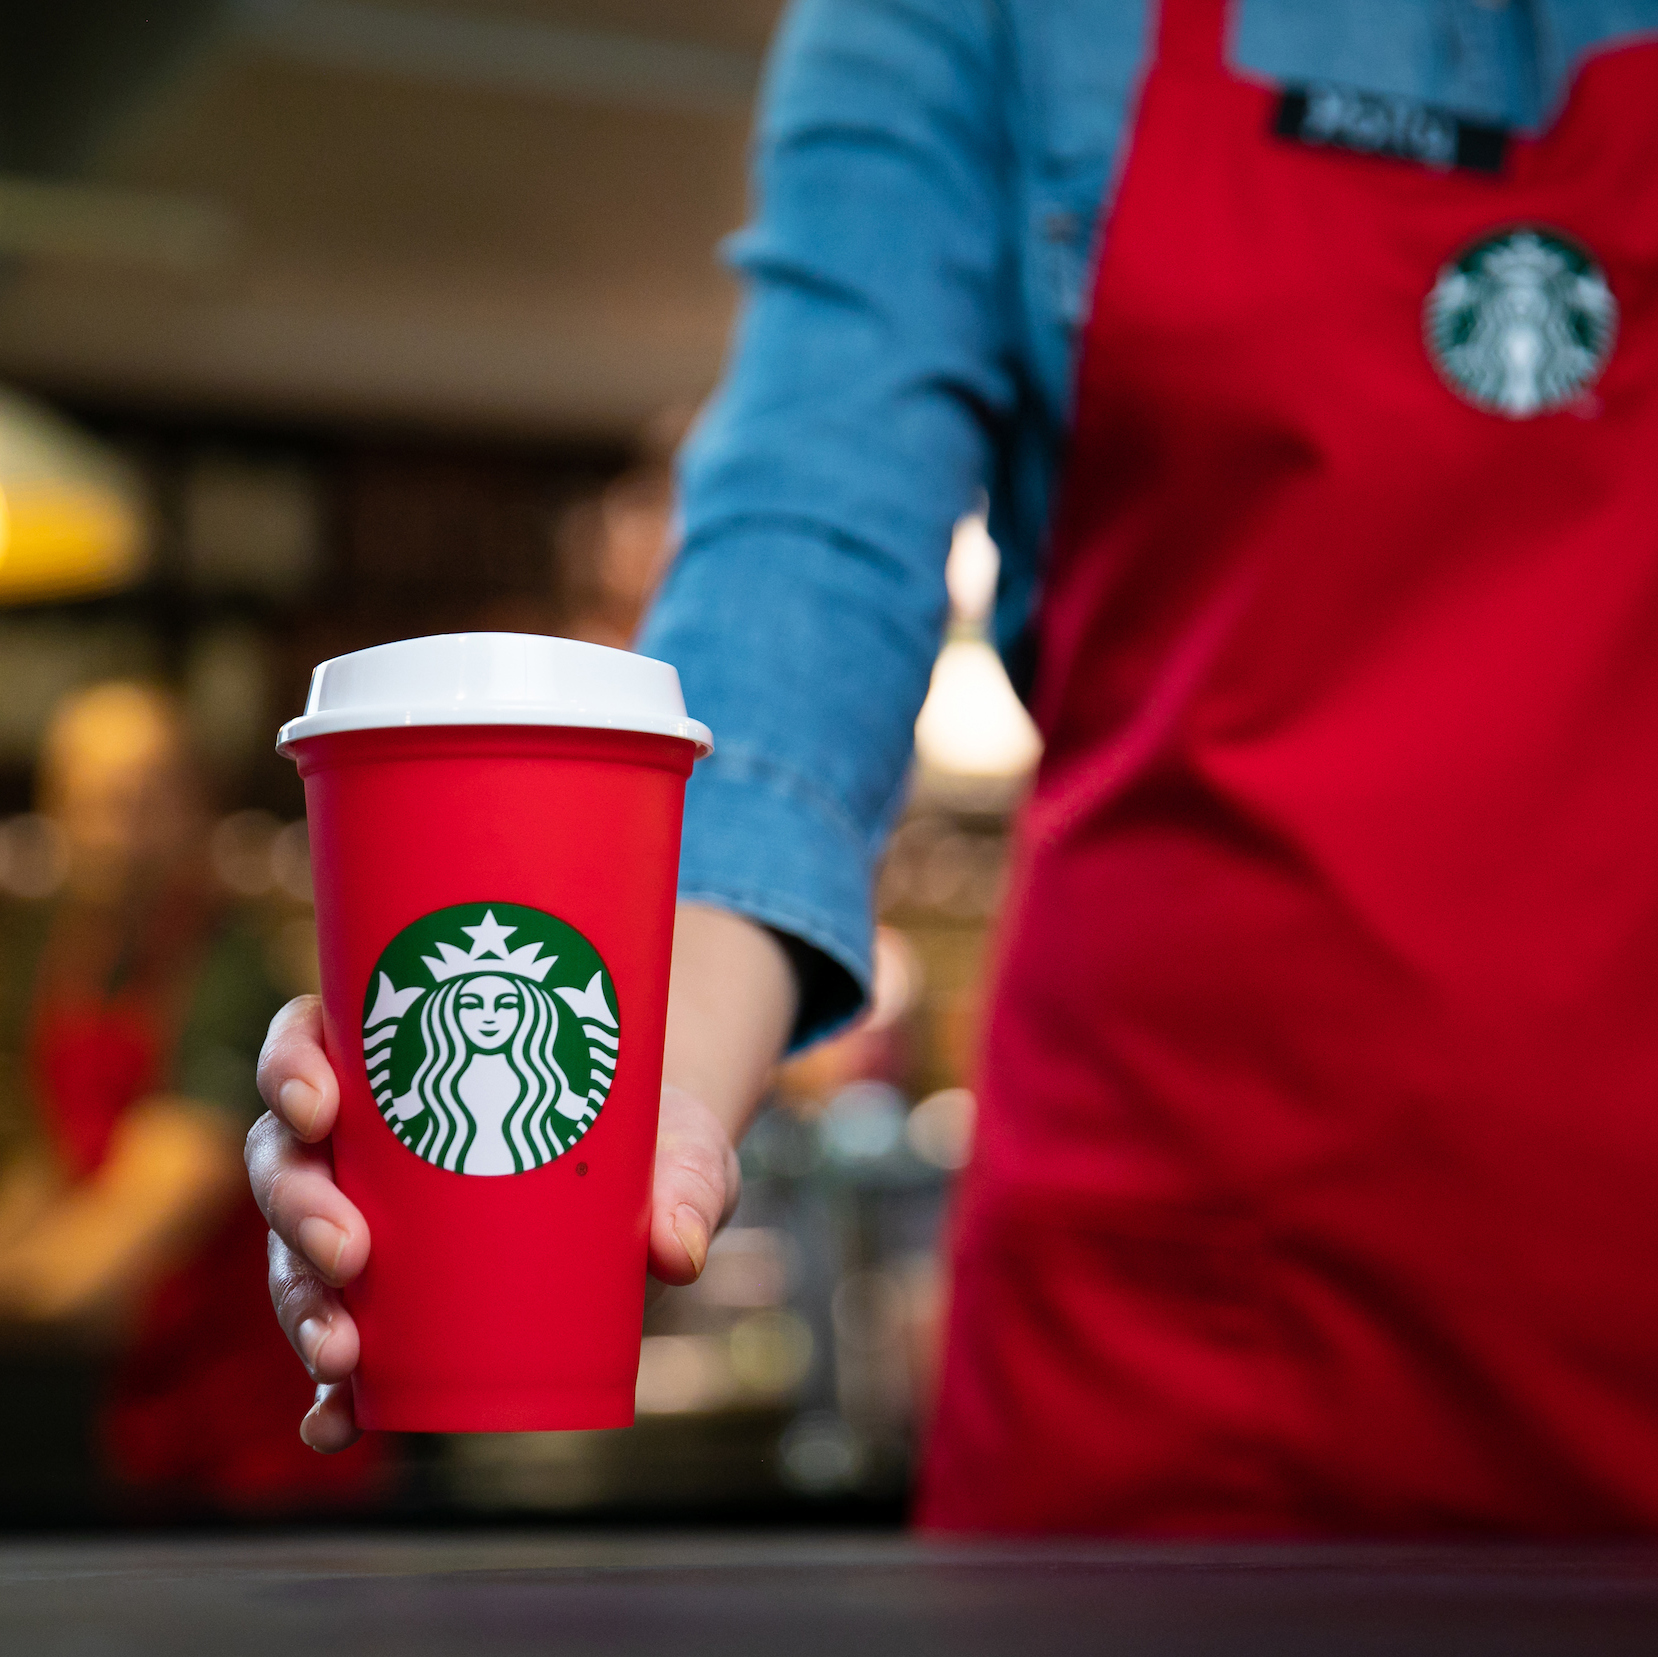 starbucks giving free coffee to front line responders